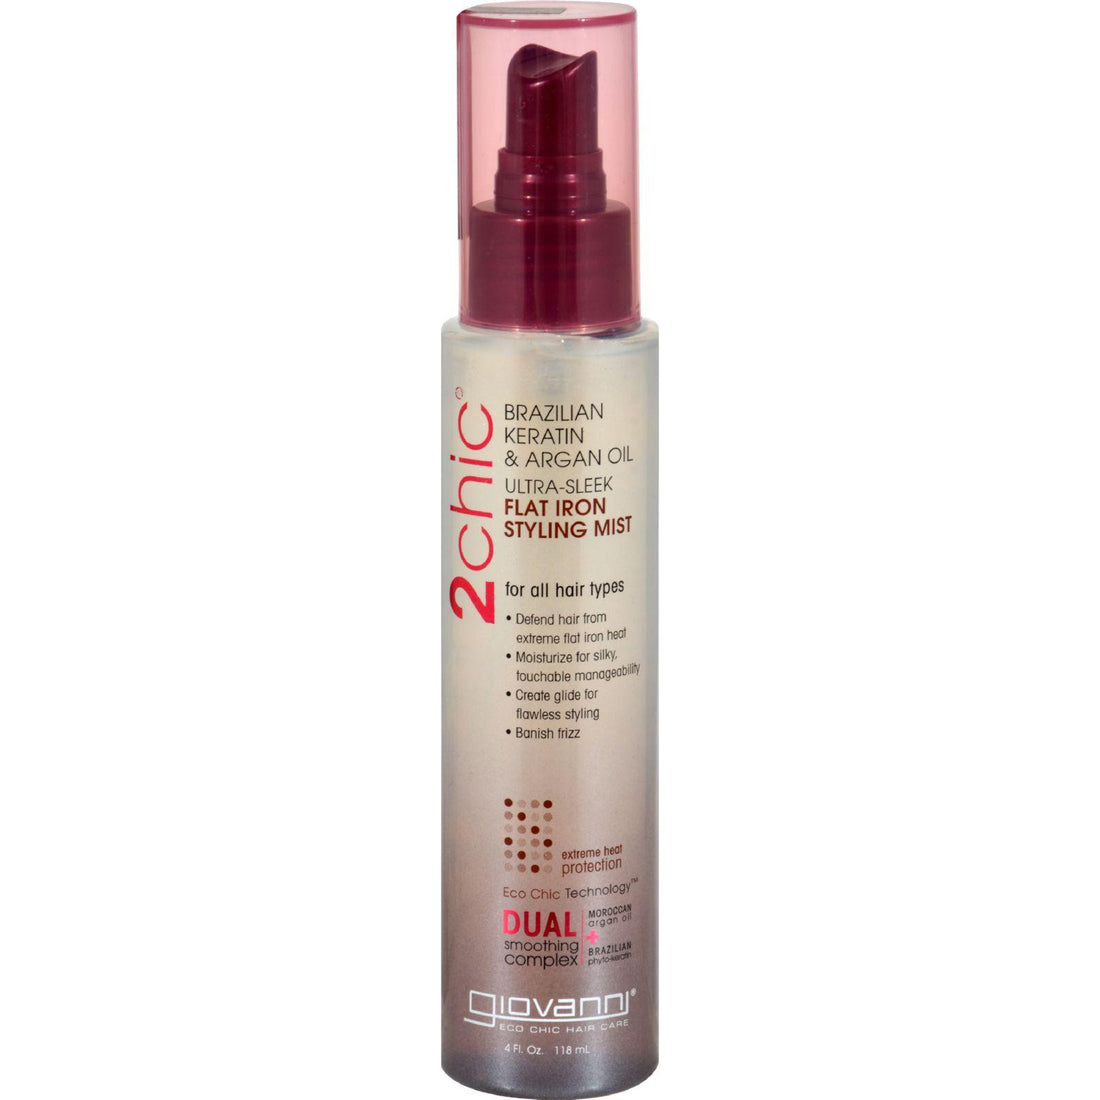 Mother Mantis: Giovanni 2chic Flat Iron Styling Mist With Brazilian Keratin And Argan Oil - 4 Fl Oz Giovanni Hair Care Products